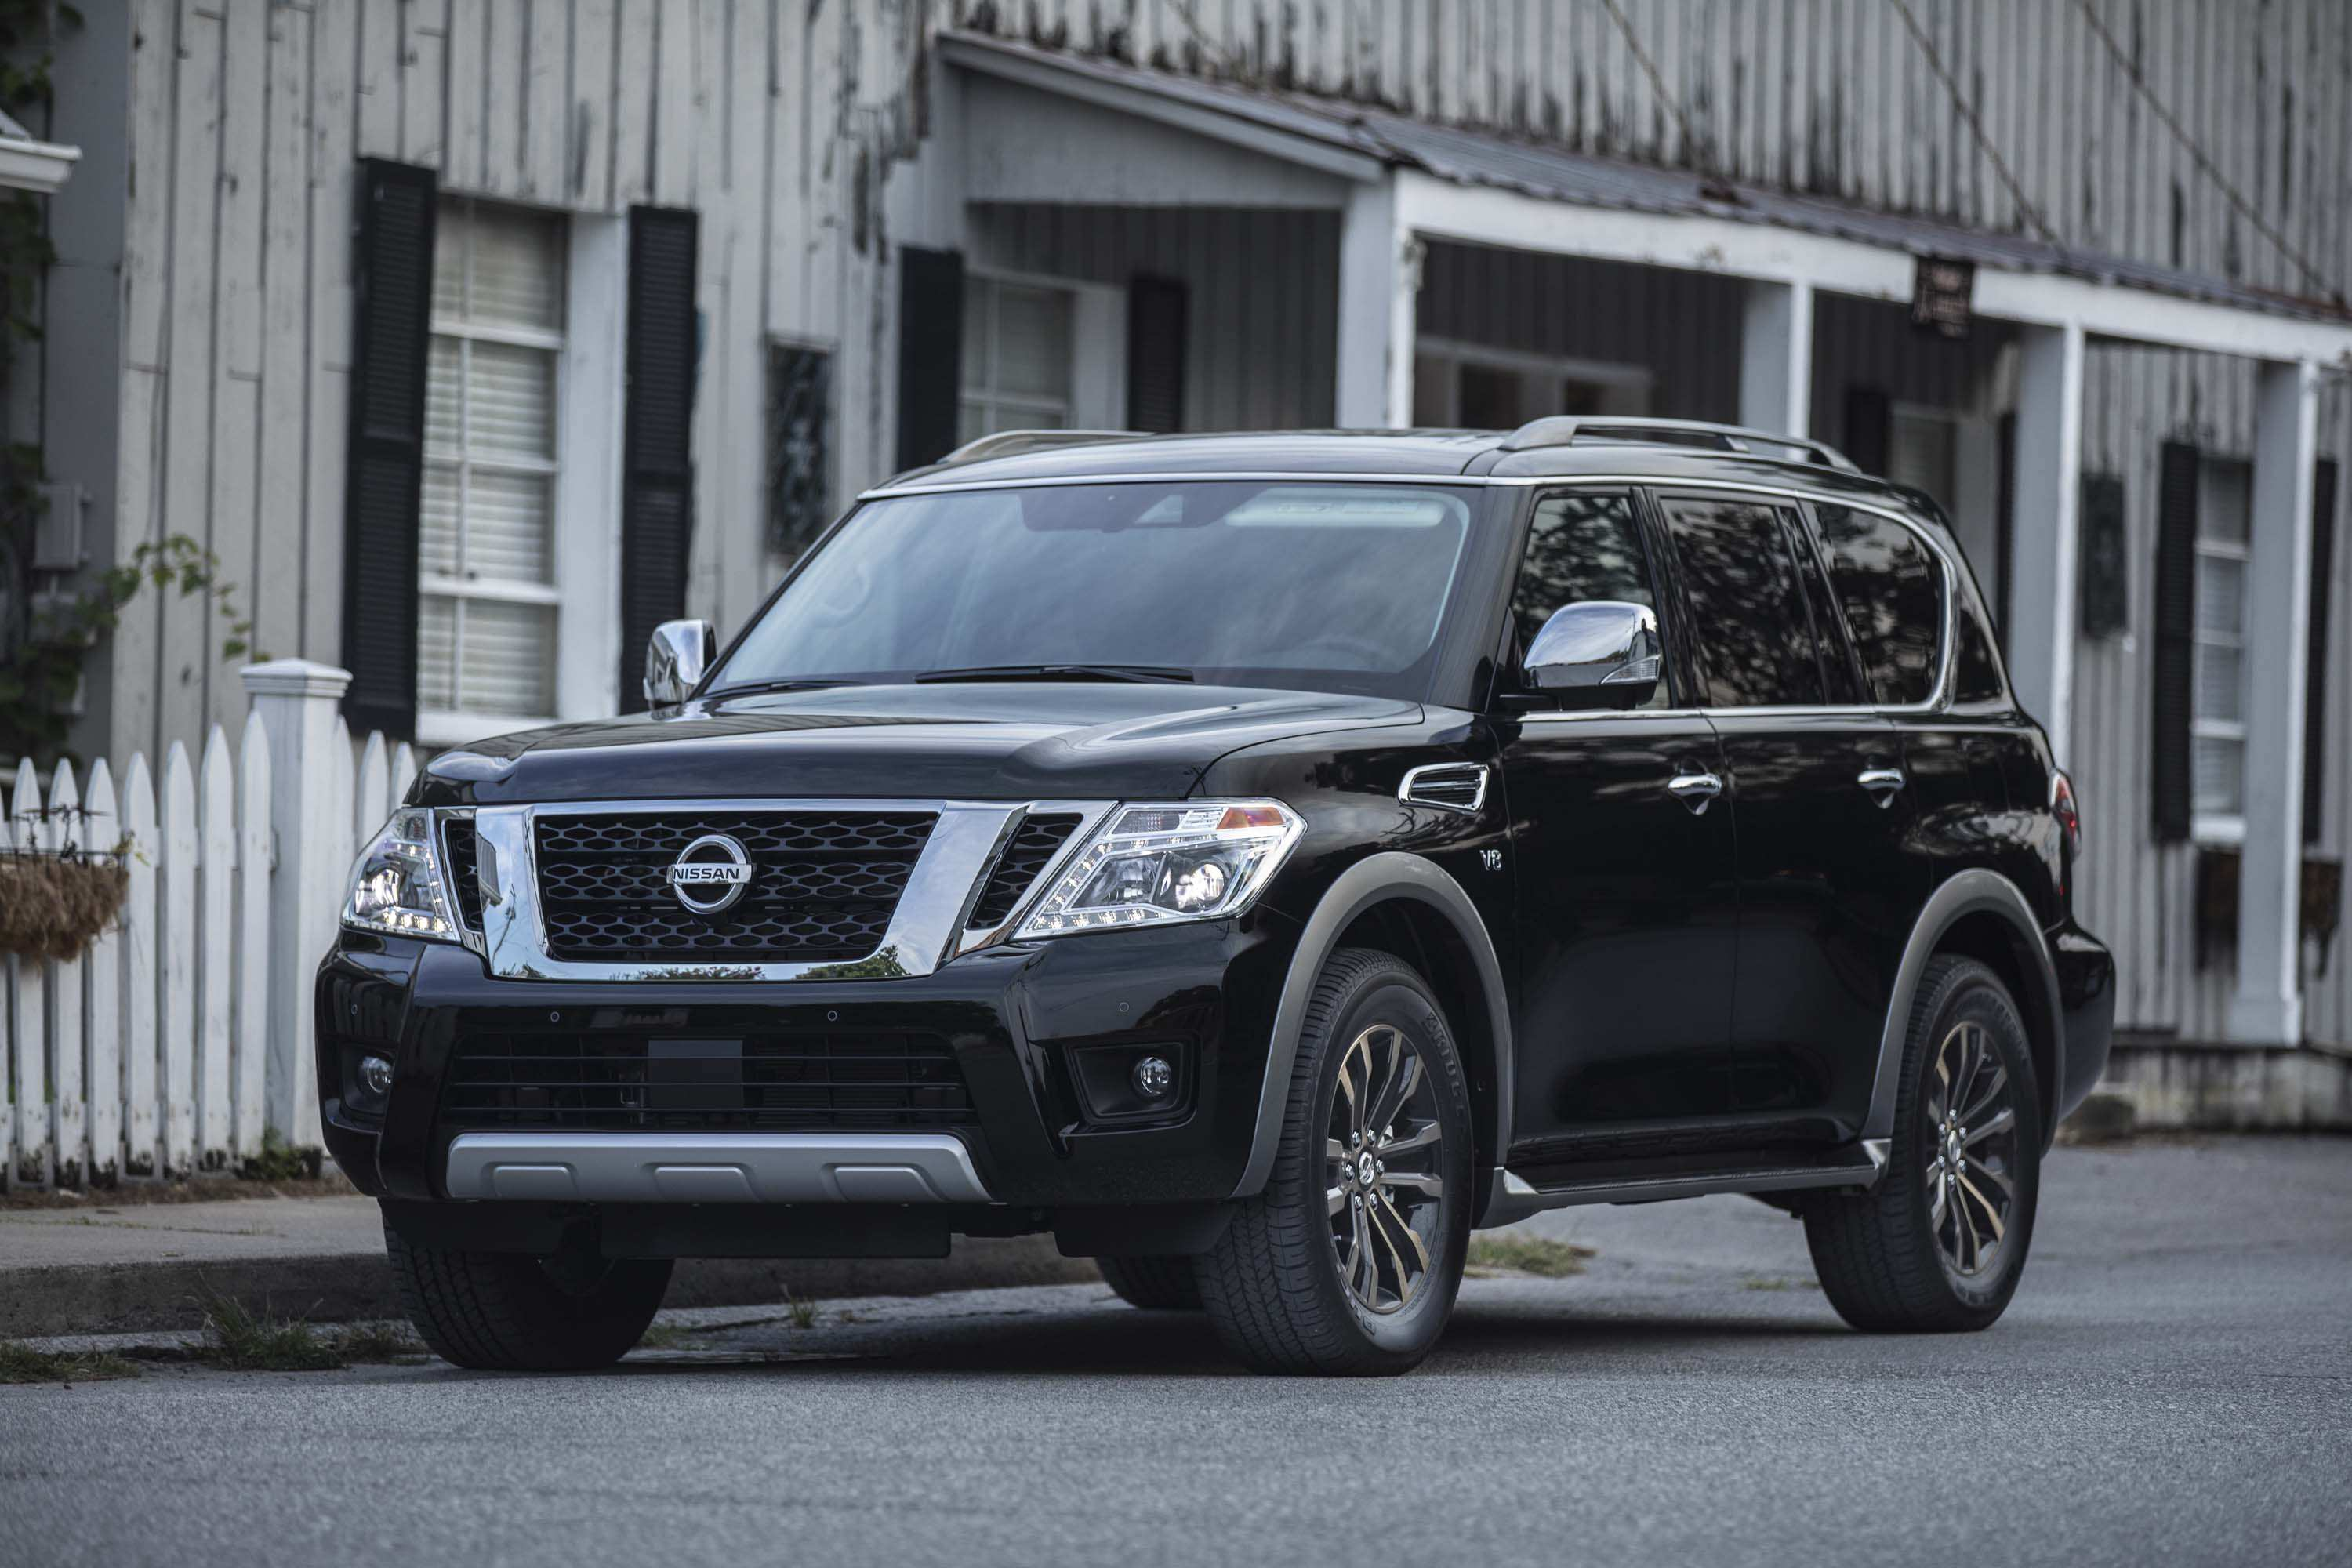 57 The Best 2019 Nissan Armada Overview